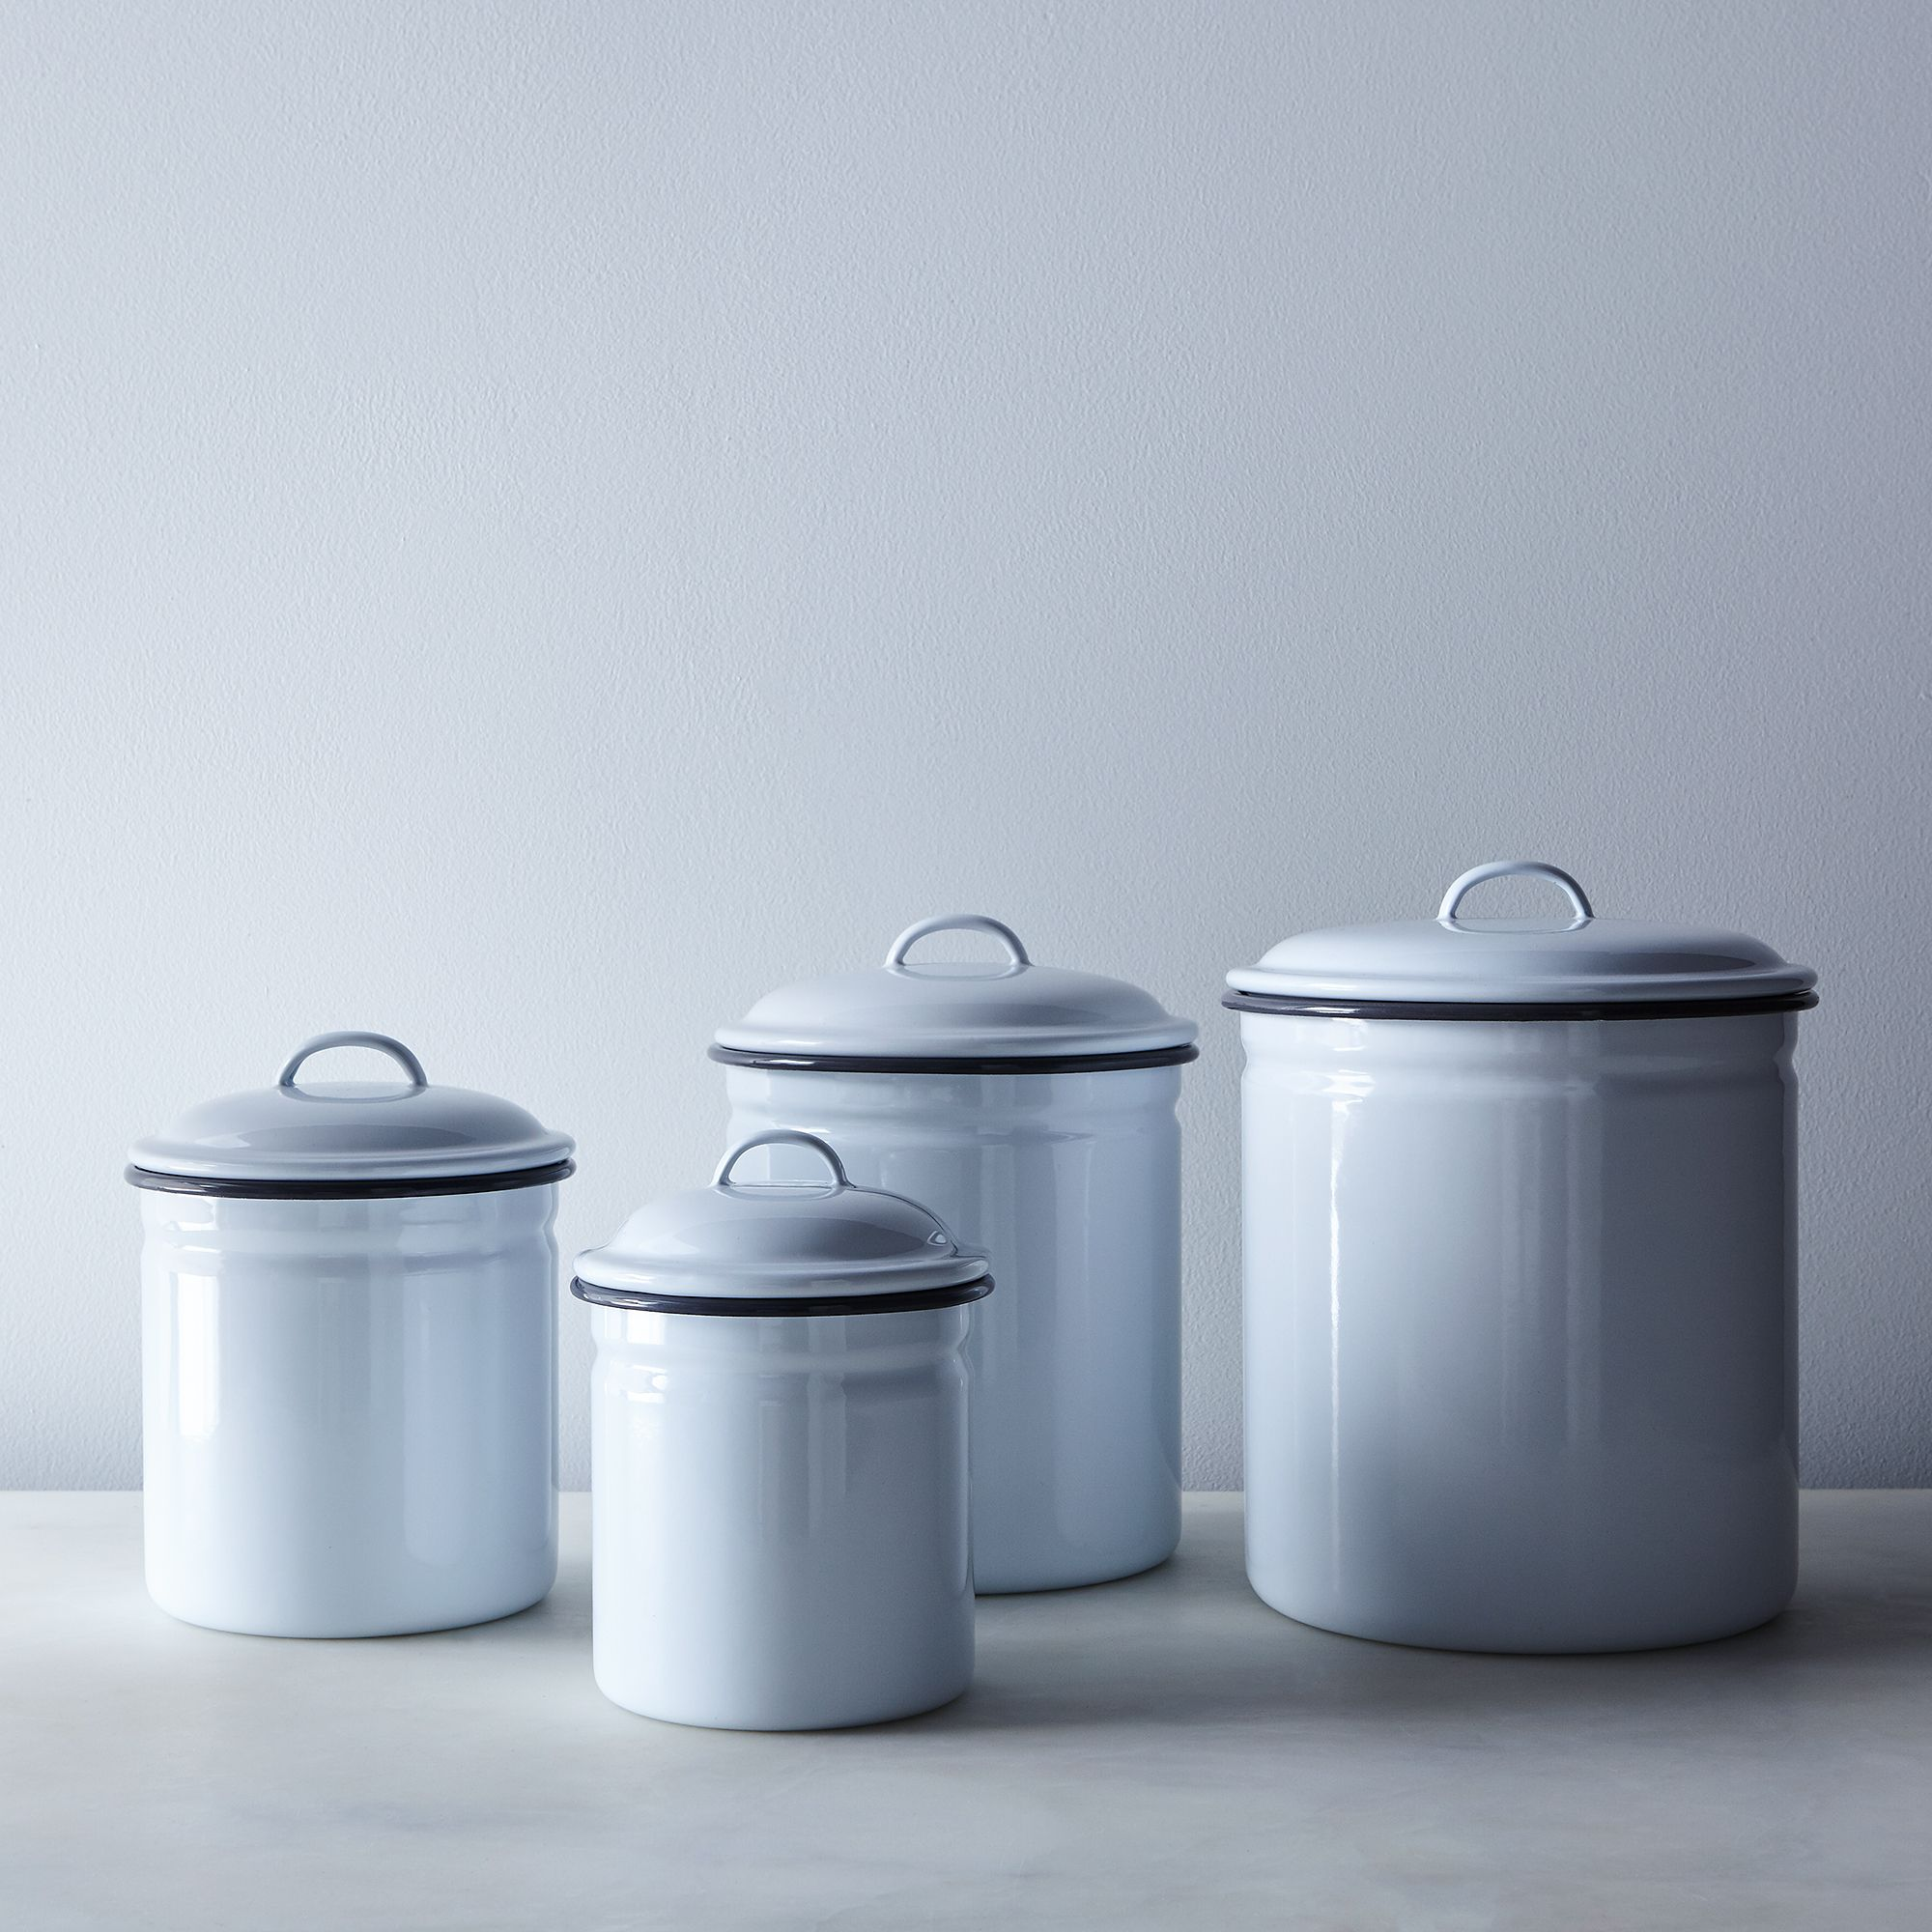 everywhere anywhere enamelware white grey enamel kitchen canisters set of